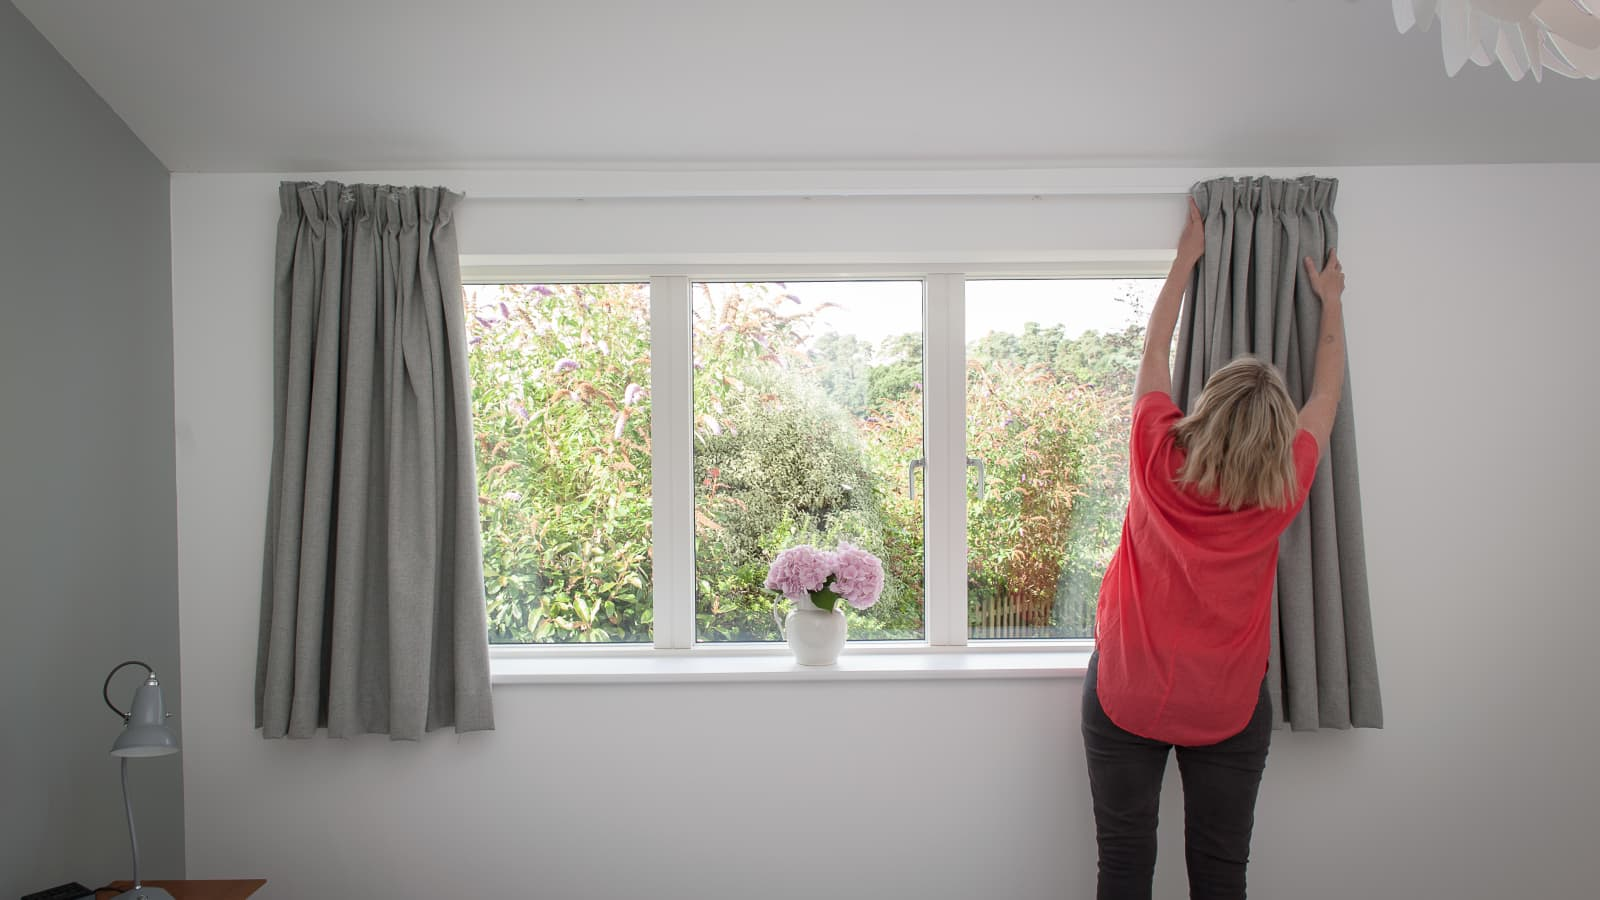 Stitched Our Top 5 Curtain Hacks